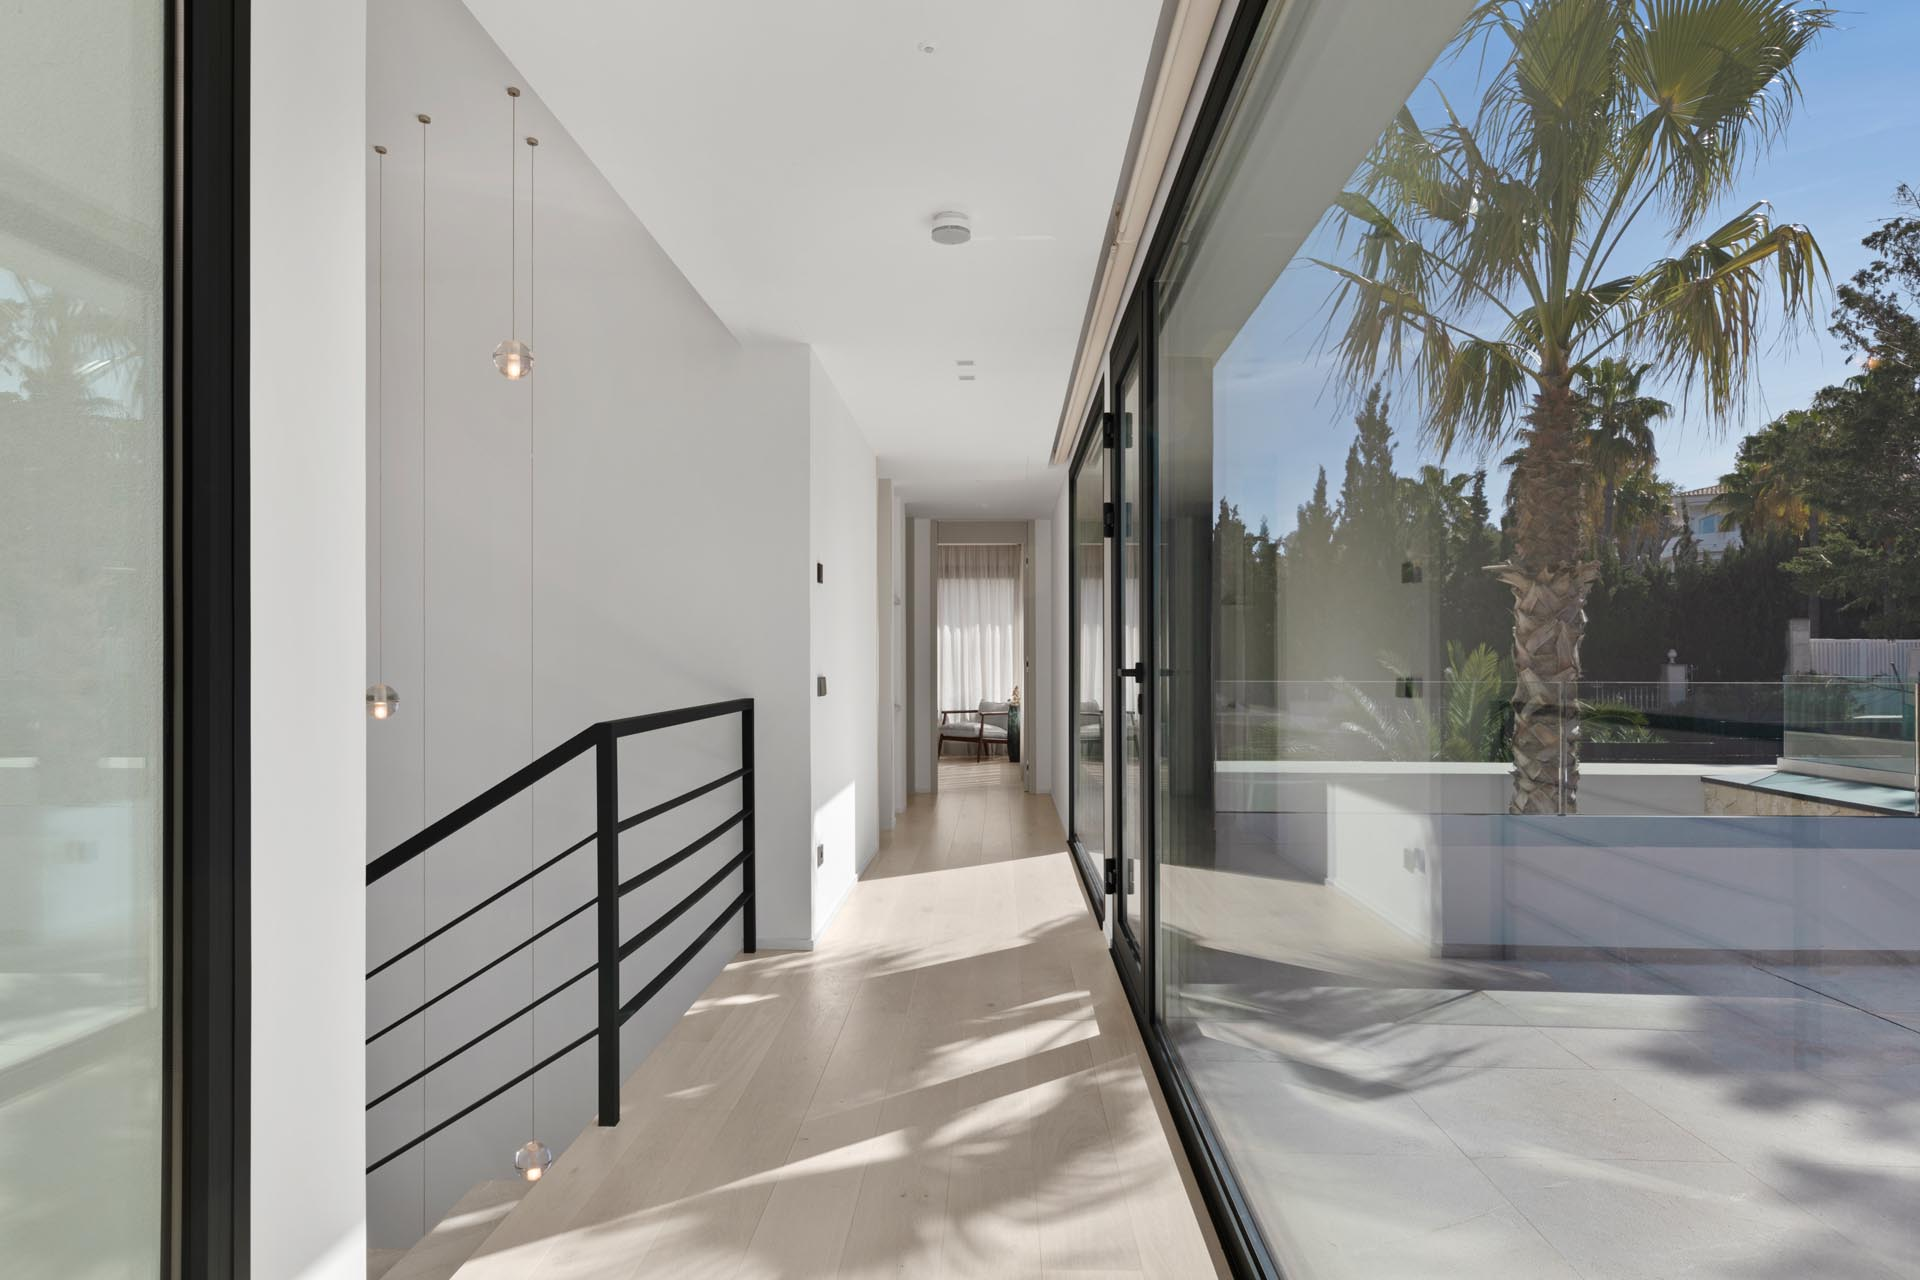 The upper floor of this modern house has large windows that provide an abundance of natural light.